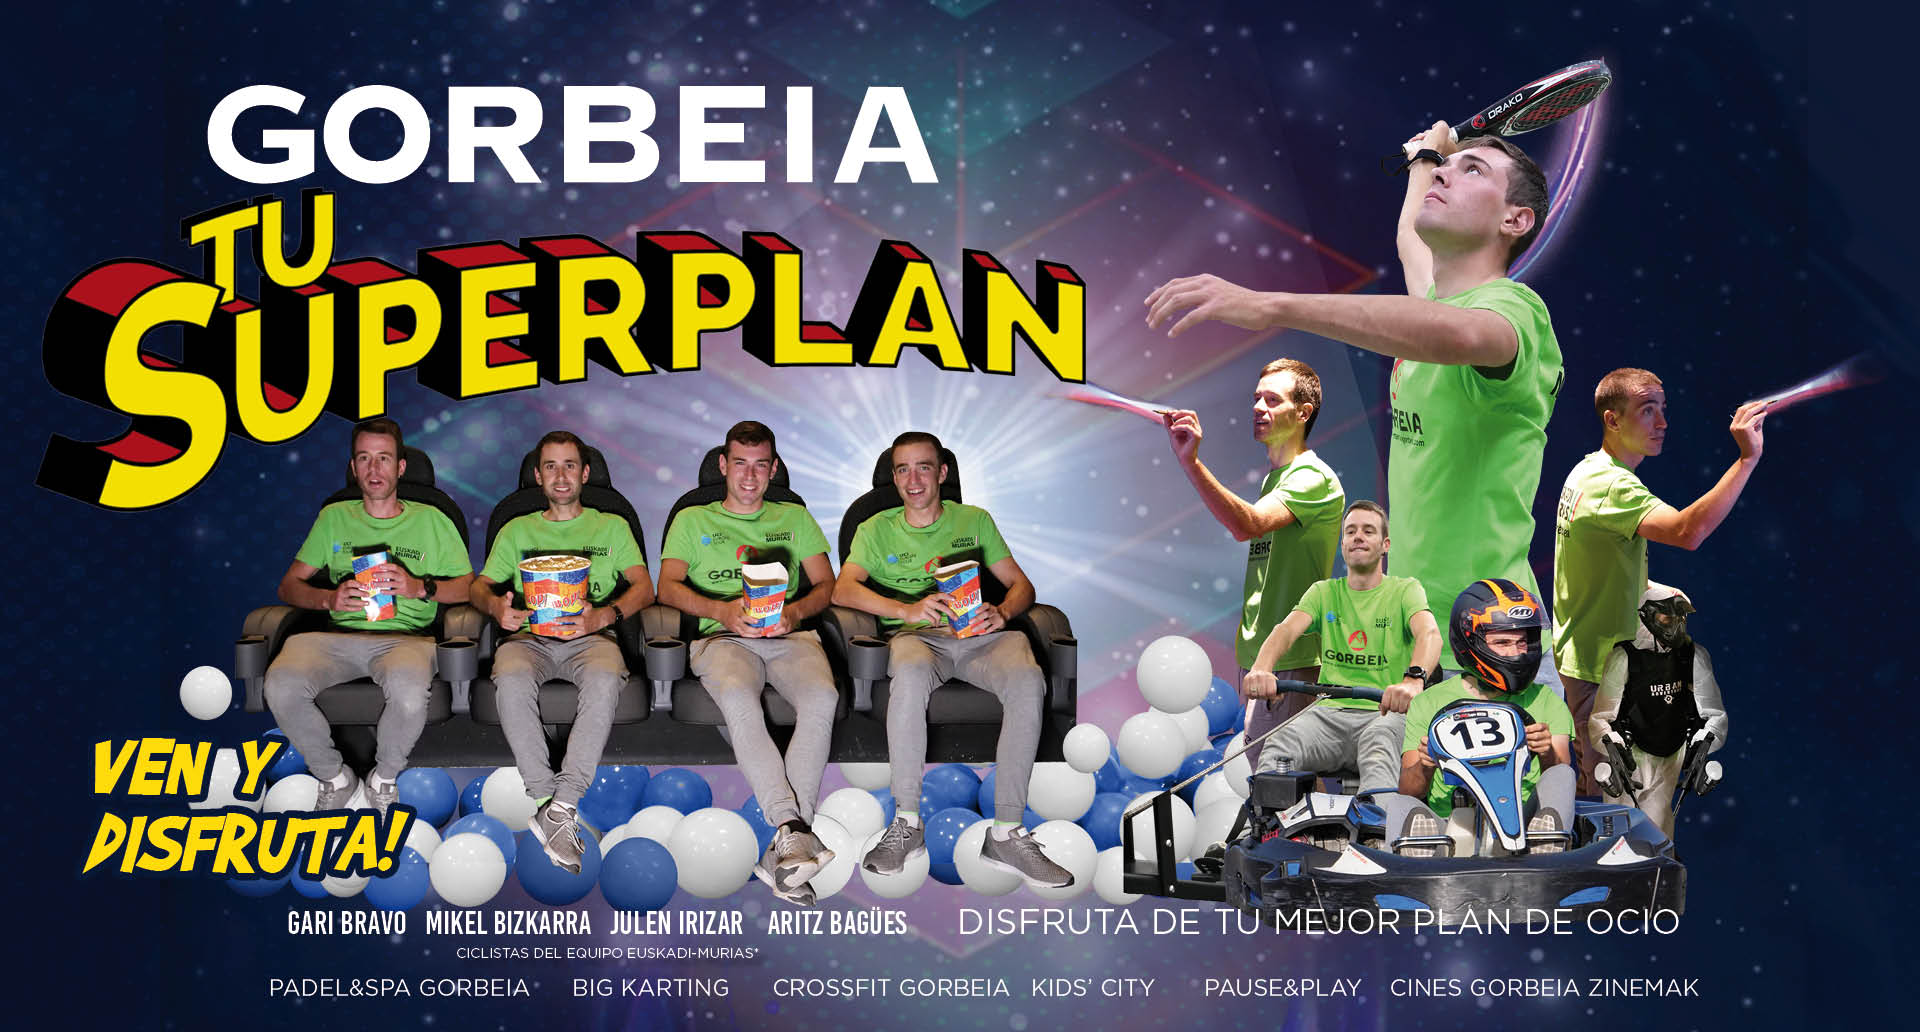 ¡Gorbeia es tu Superplan!